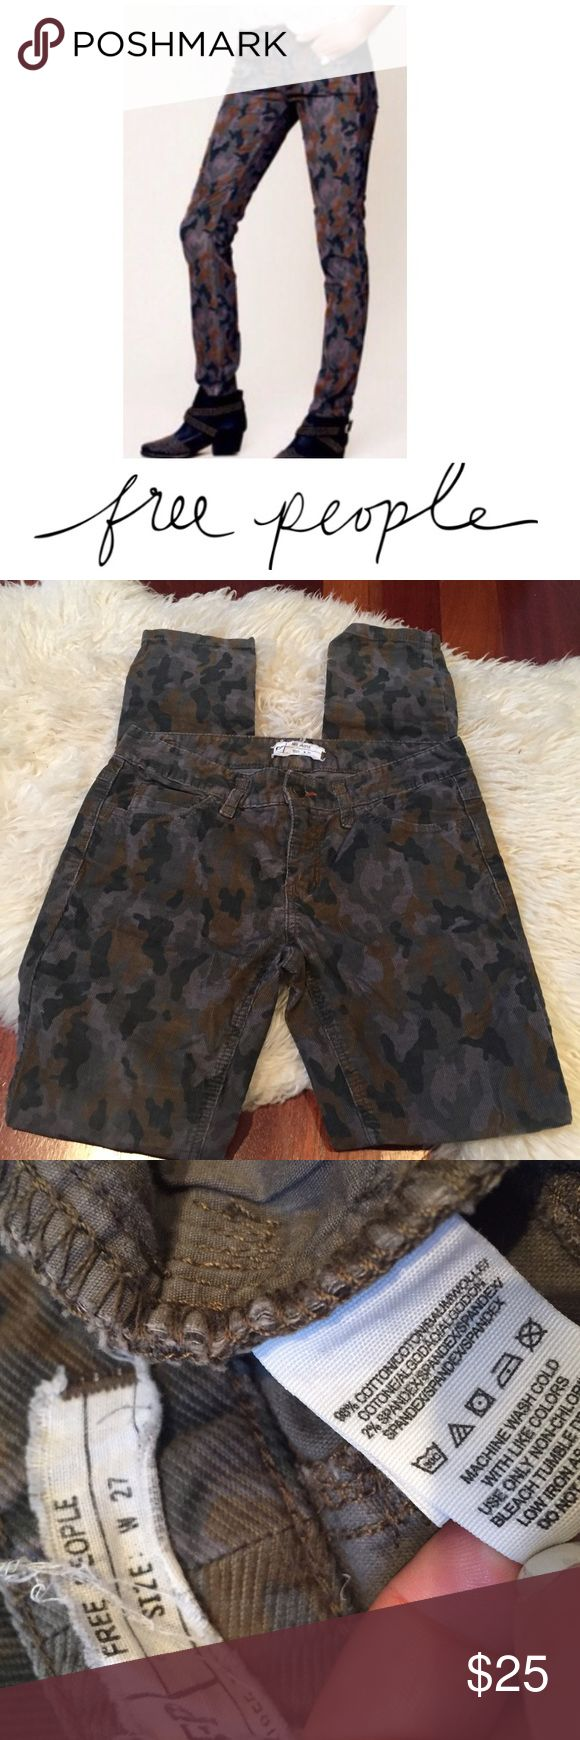 Free People Military Camo Skinny Corduroy Pants Free People Military Camo Skinny Corduroy Pants. 8 inch rise. 31 inch inseam. Size 27 which is a 4. Gently worn. Great condition. Feel free to make an offer or bundle & save! Free People Pants Skinny